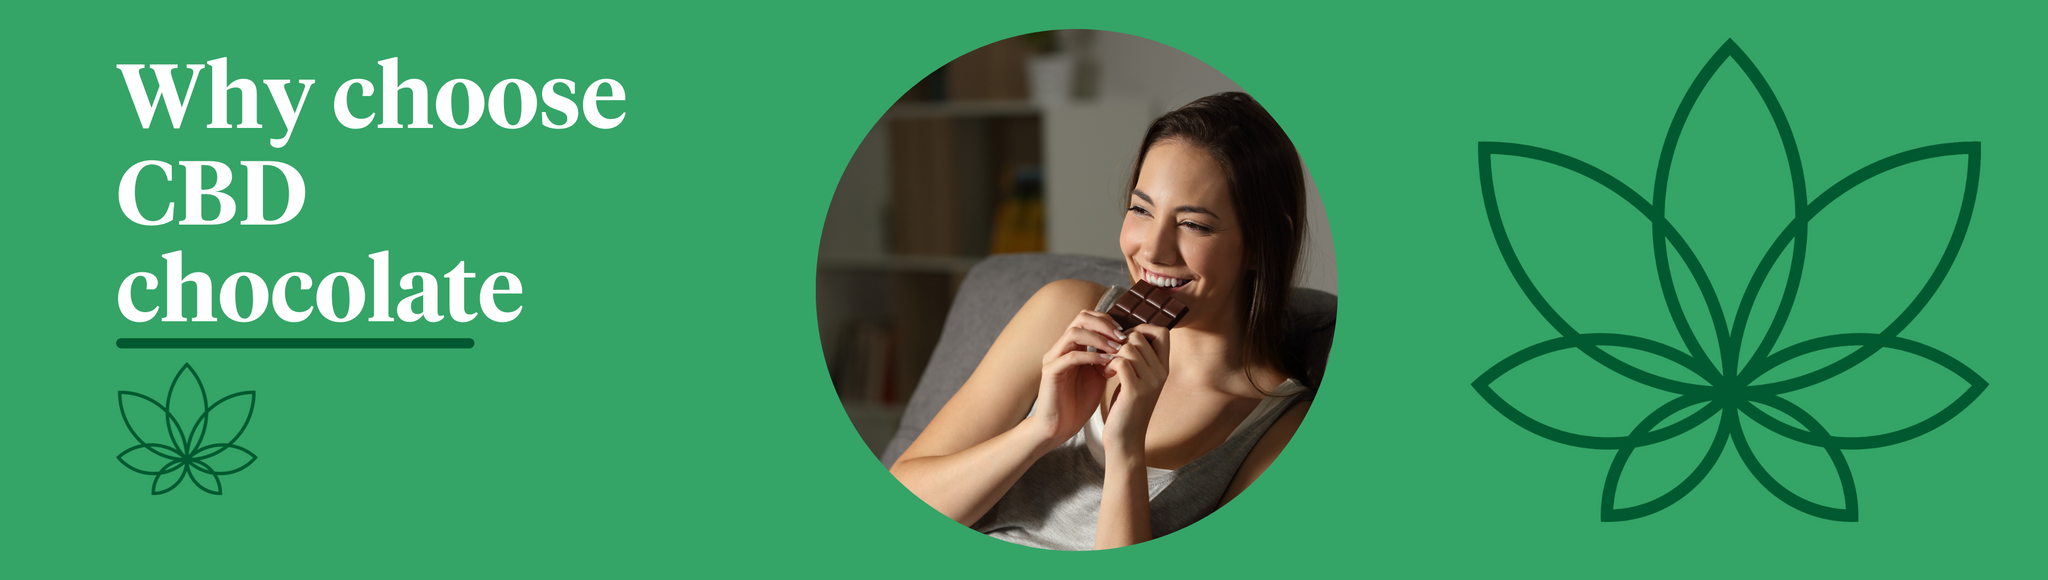 A green background with the Supreme CBD logo to the right of the image with a person in the centre enjoying a bar of homemade CBD infused chocolate.